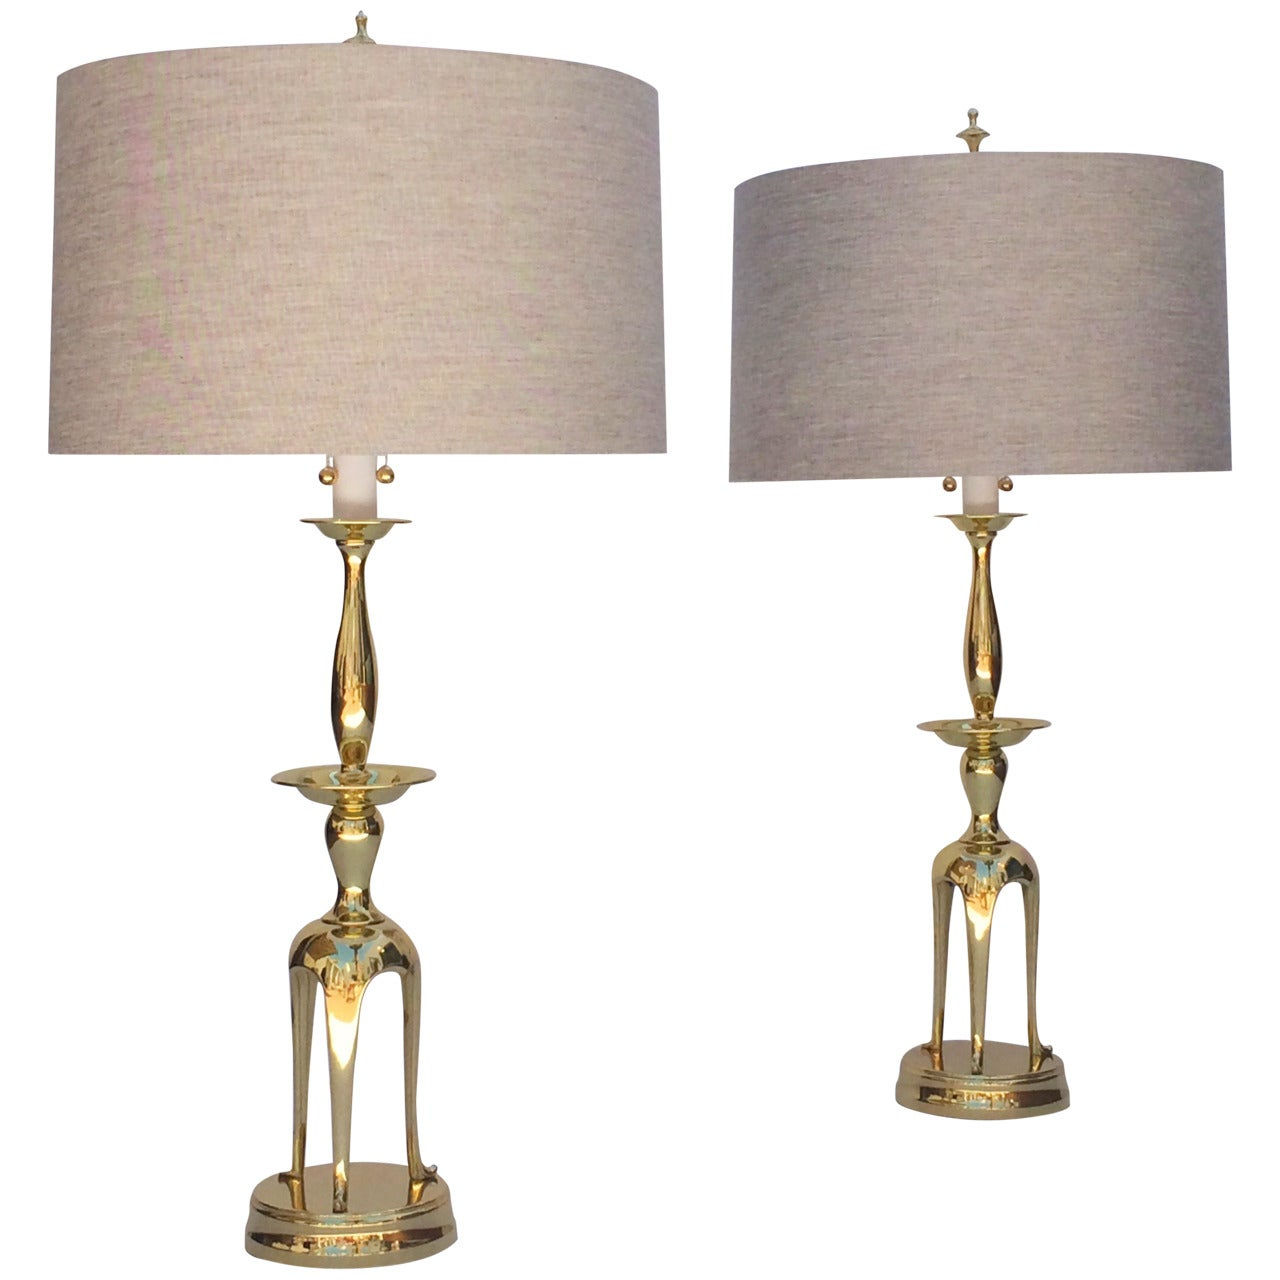 Pair of Polished Brass Chapman Lamps in the Manner of James Mont